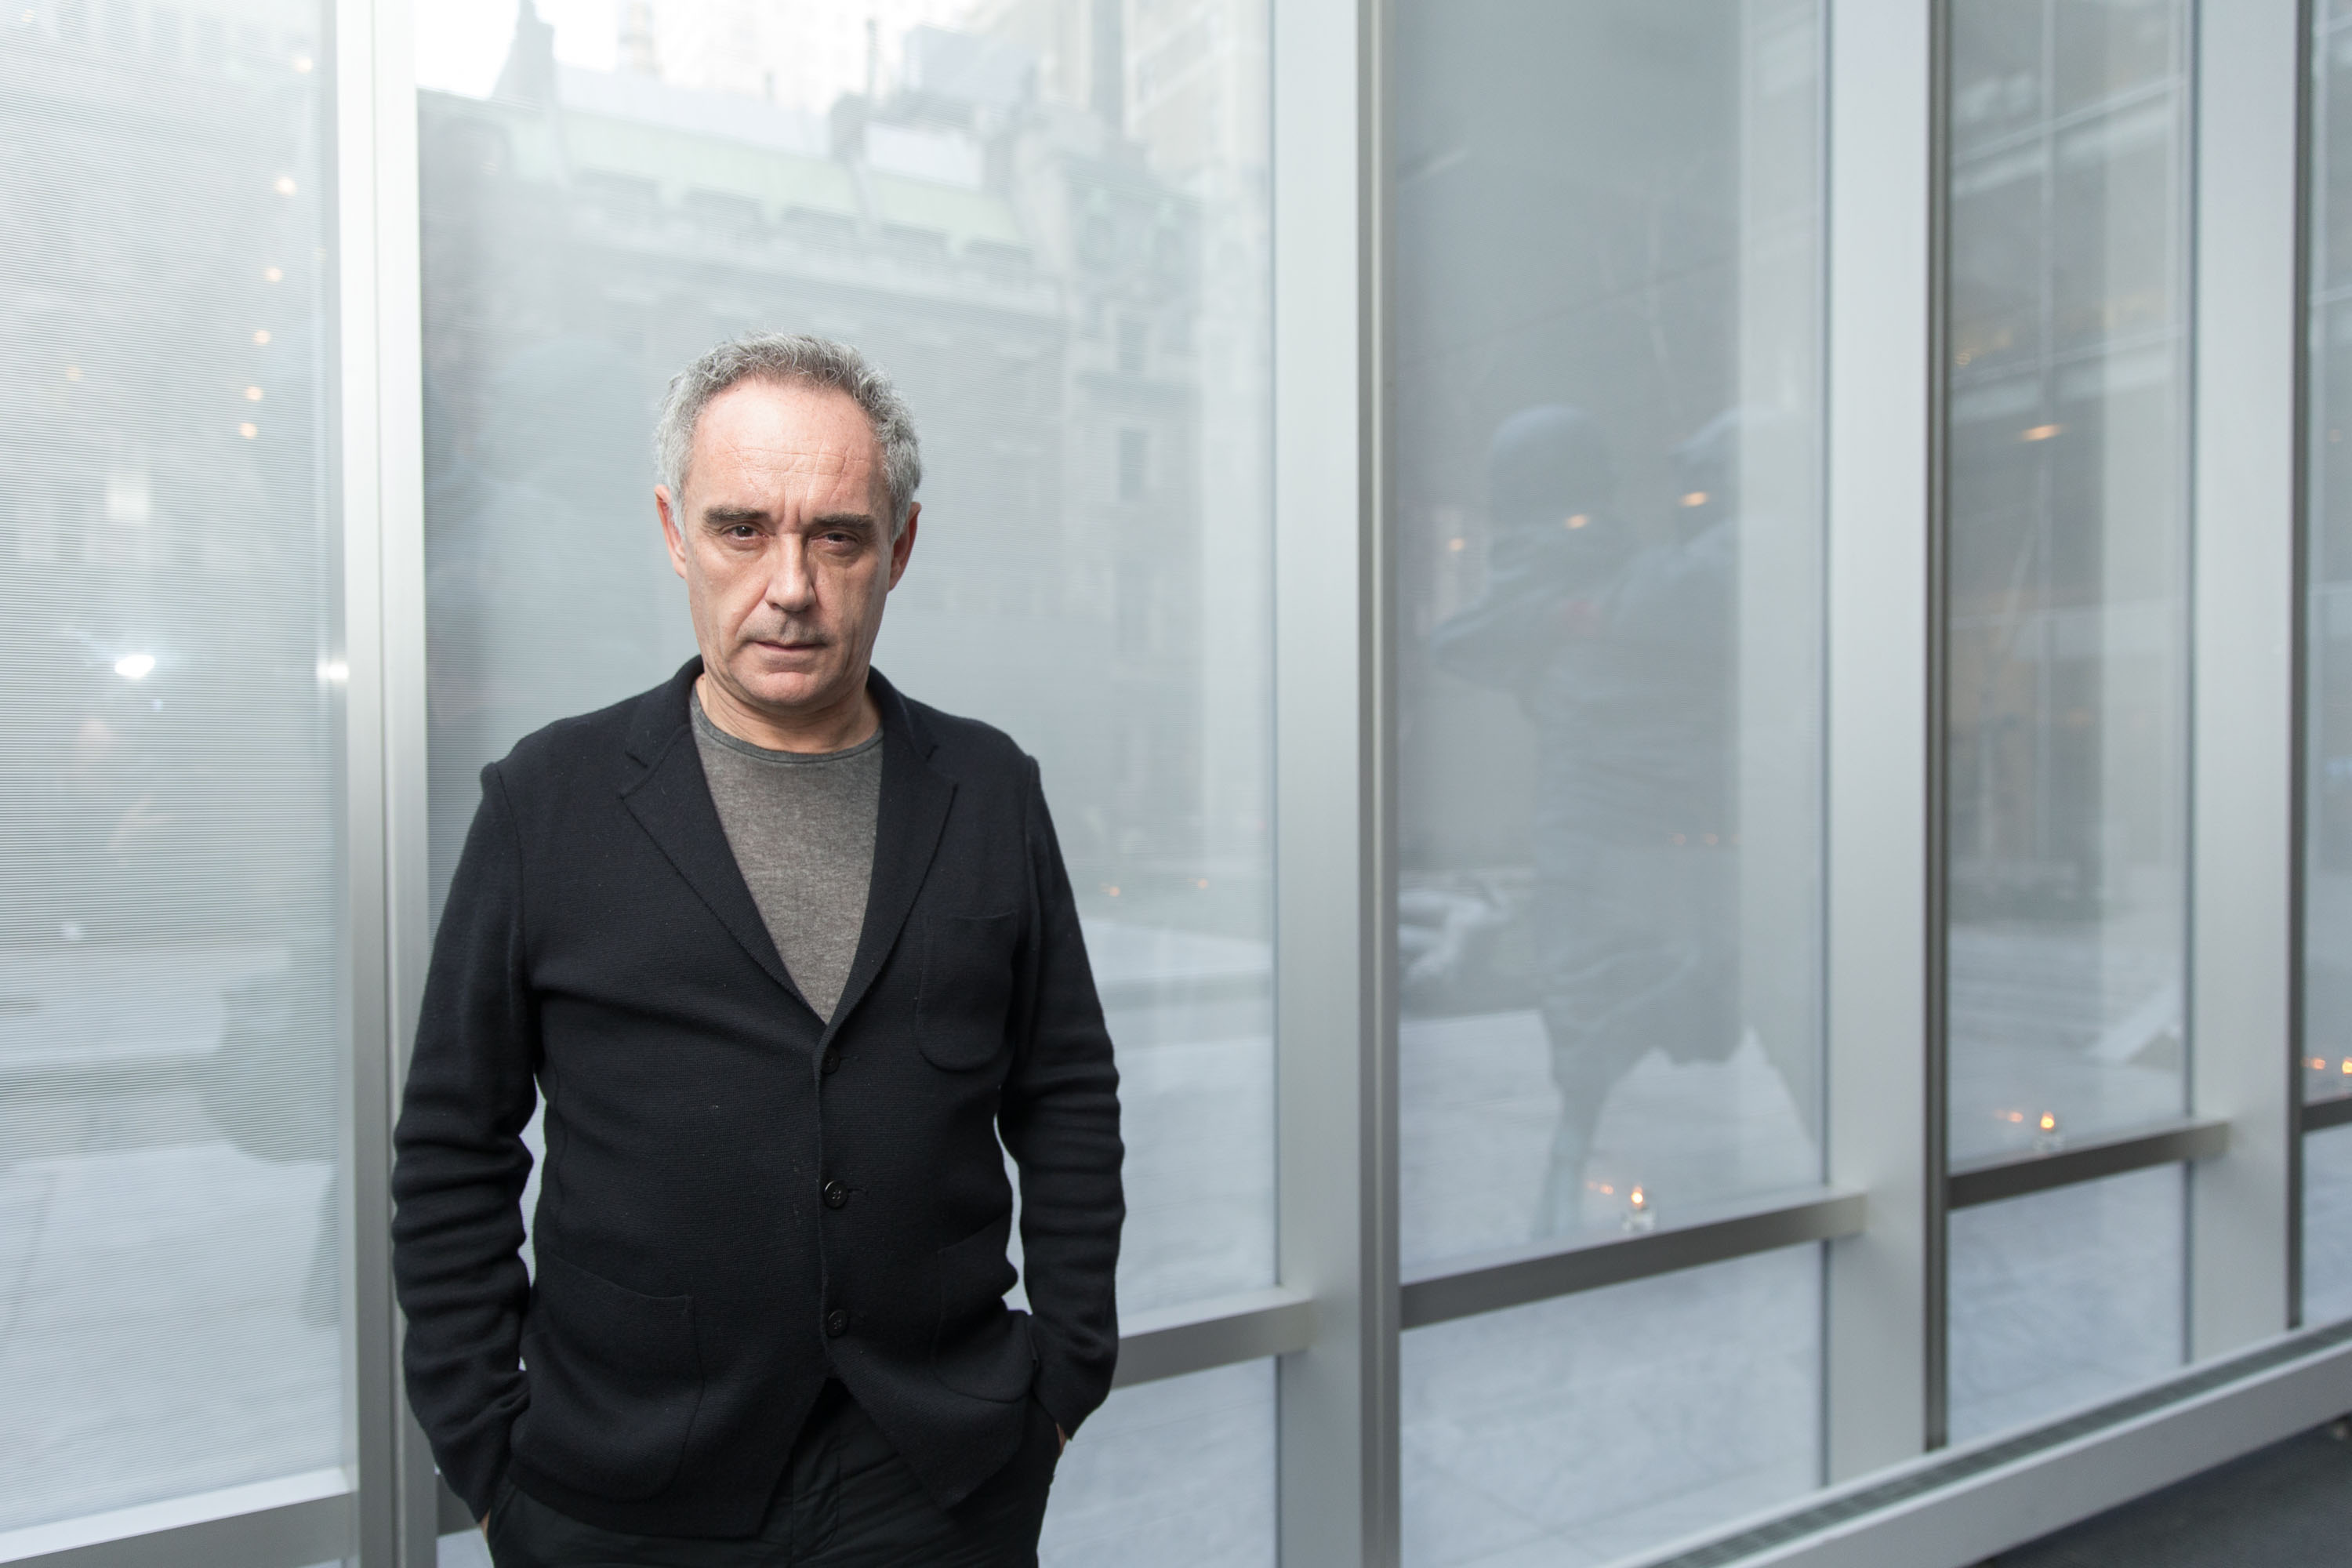 The 7 Most Illuminating Lines From the NYT's Epic Ferran Adrià Feature